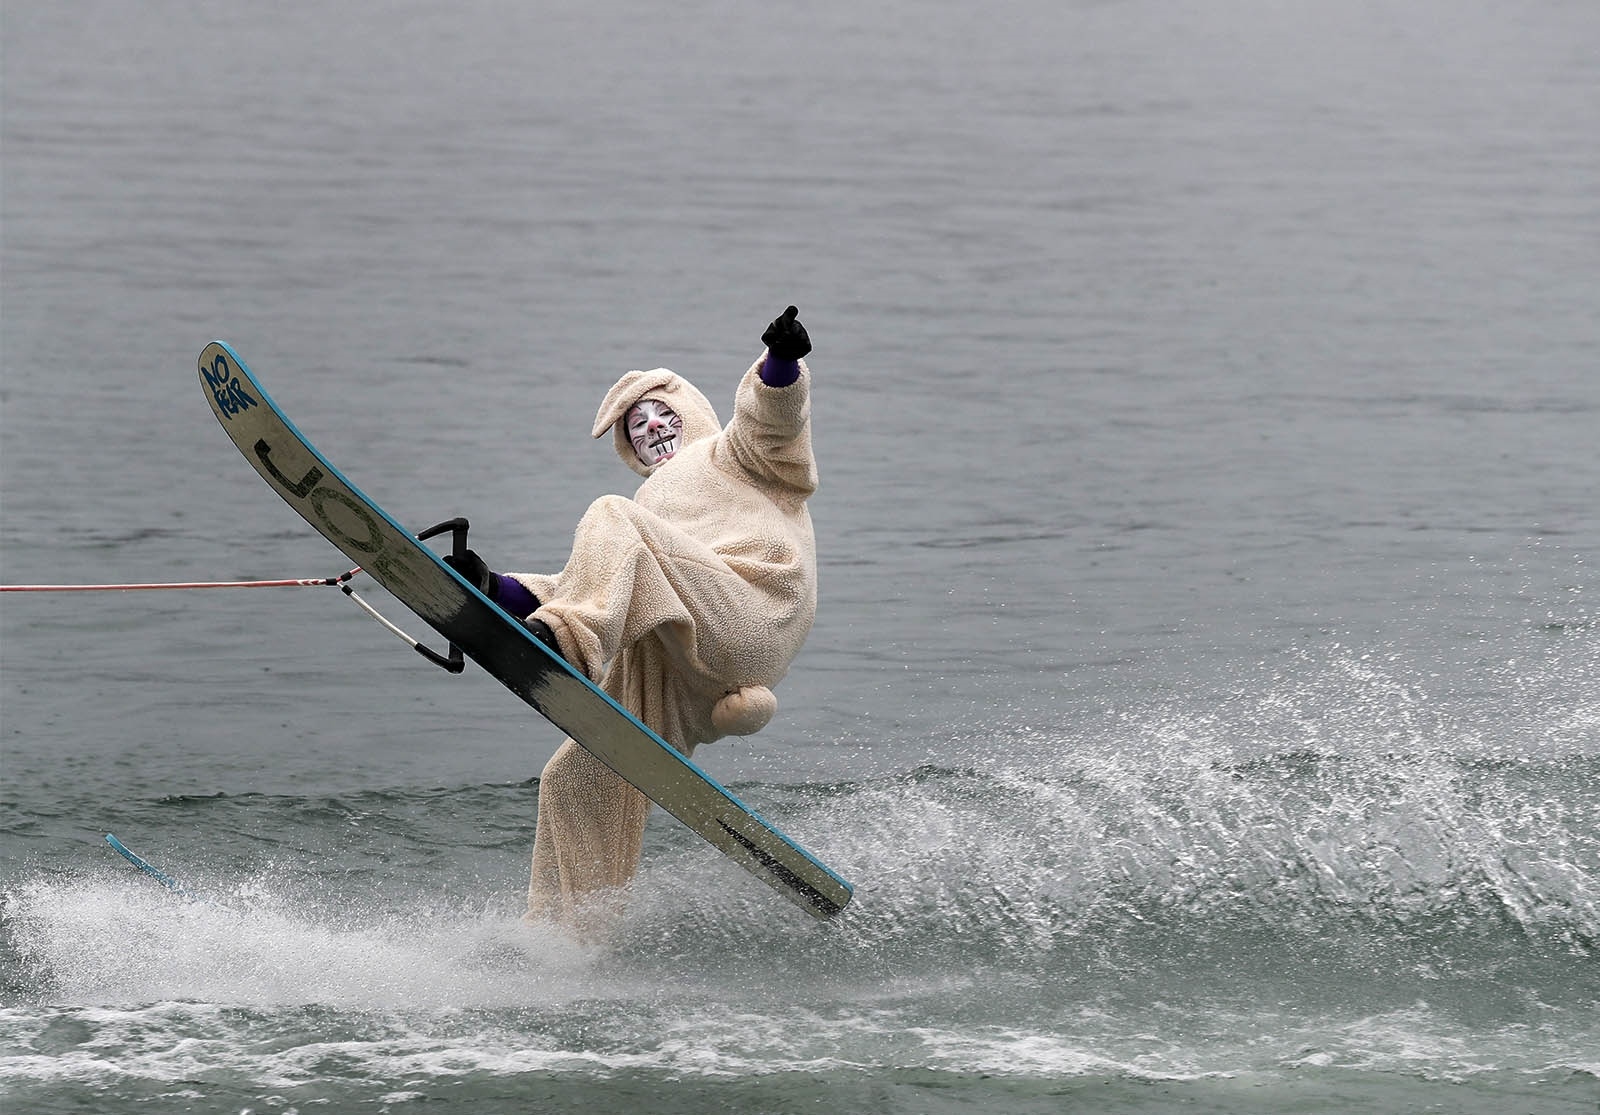 The Easter Bunny takes to the cold waters of the Niagara River as the Neptune Water Ski Club hosts a day with the Easter Bunny at the boat launch in Lewiston.